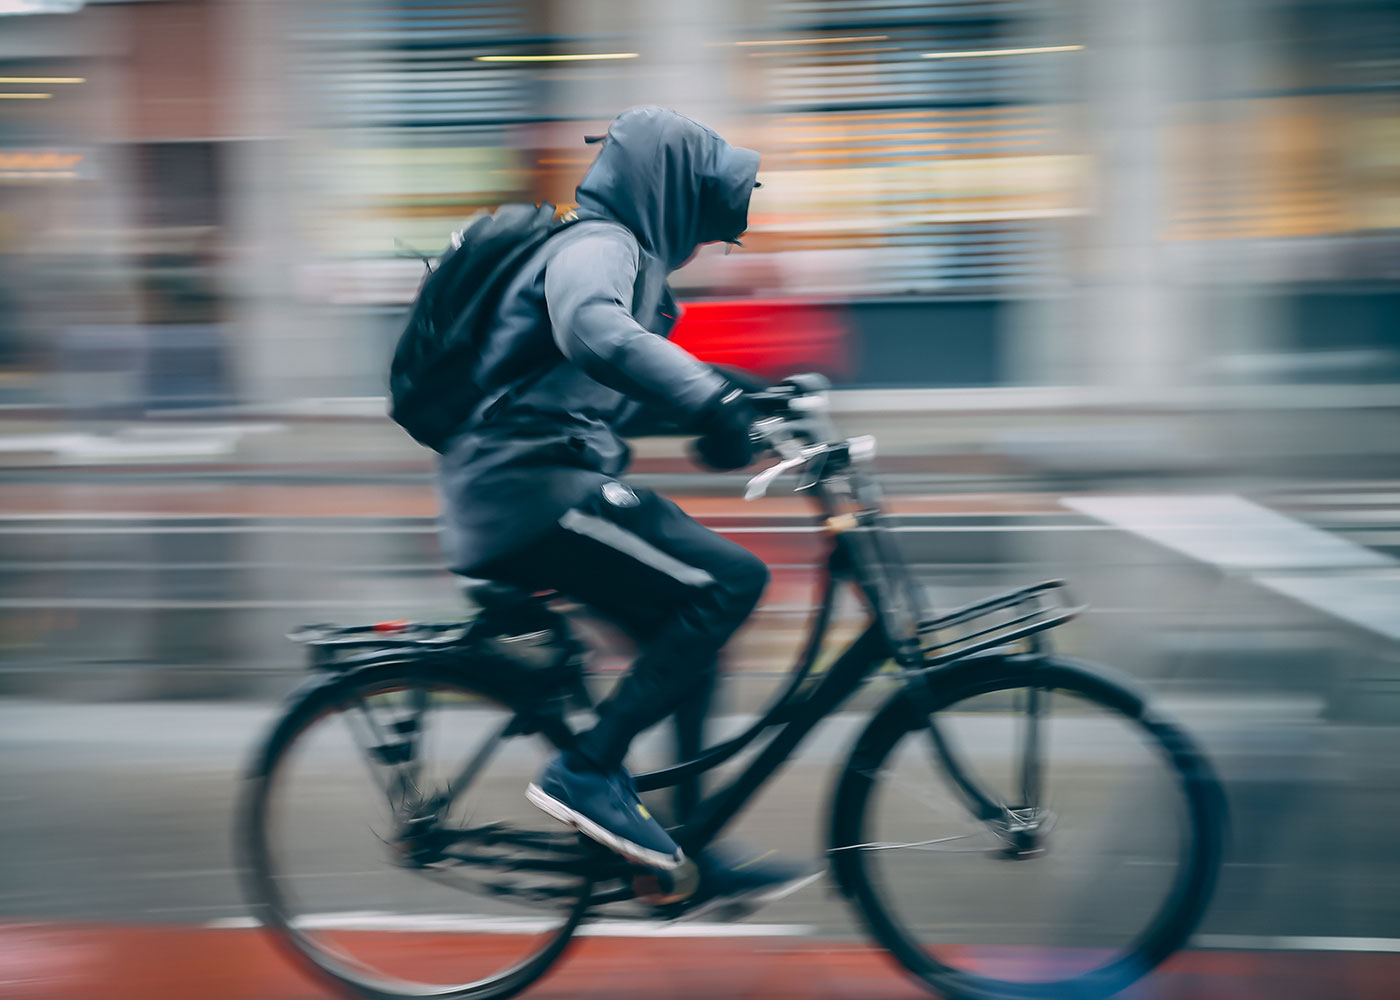 Panning in Pedal Mode